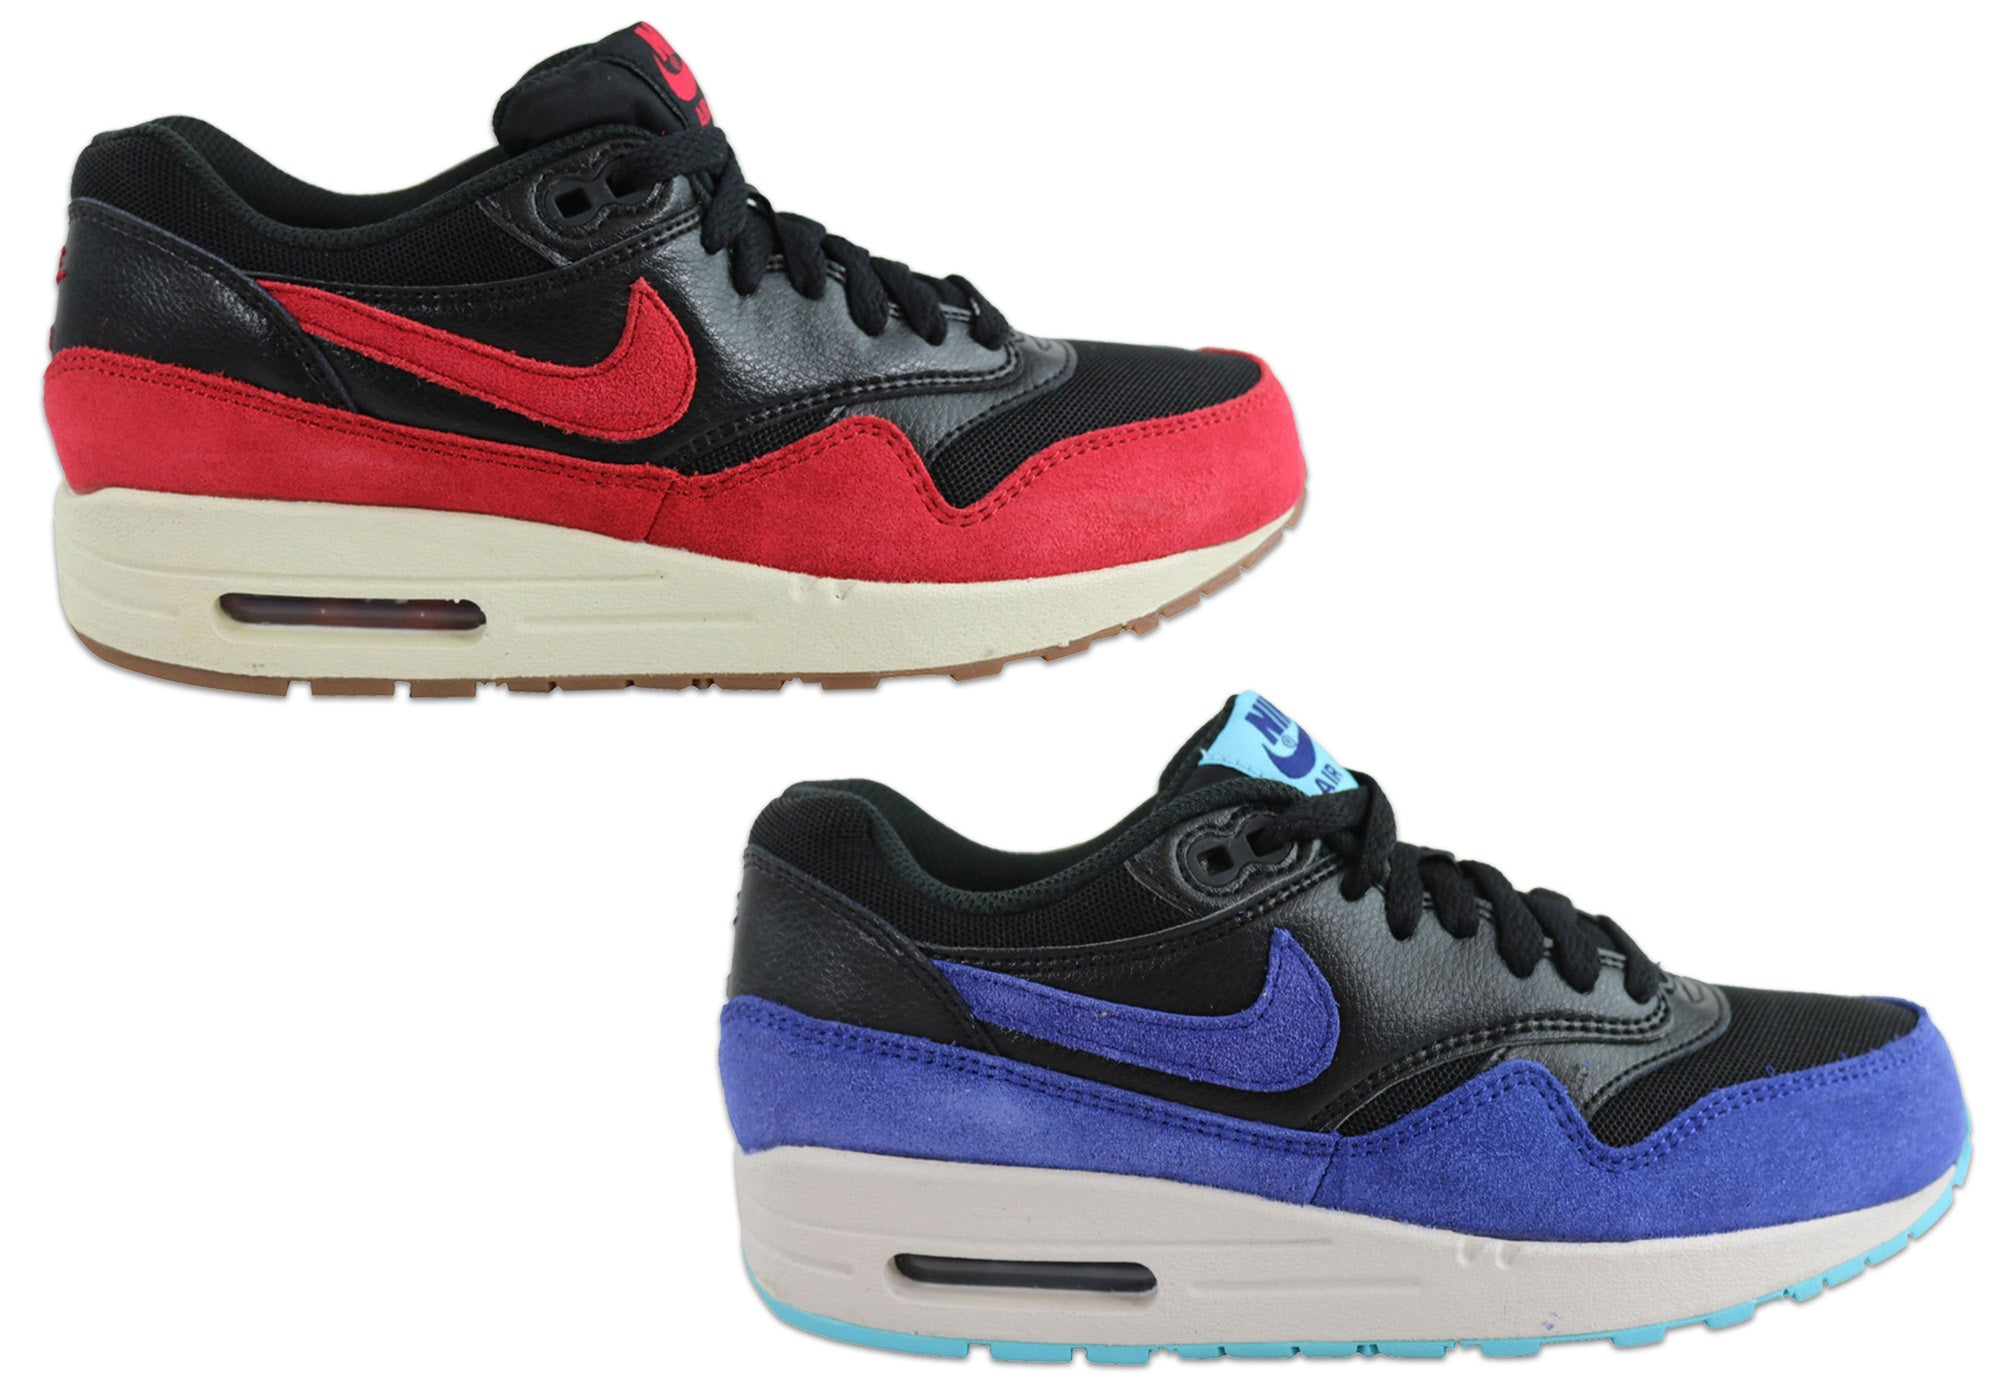 New Nike Womens Air Max 1 Essential Trainers